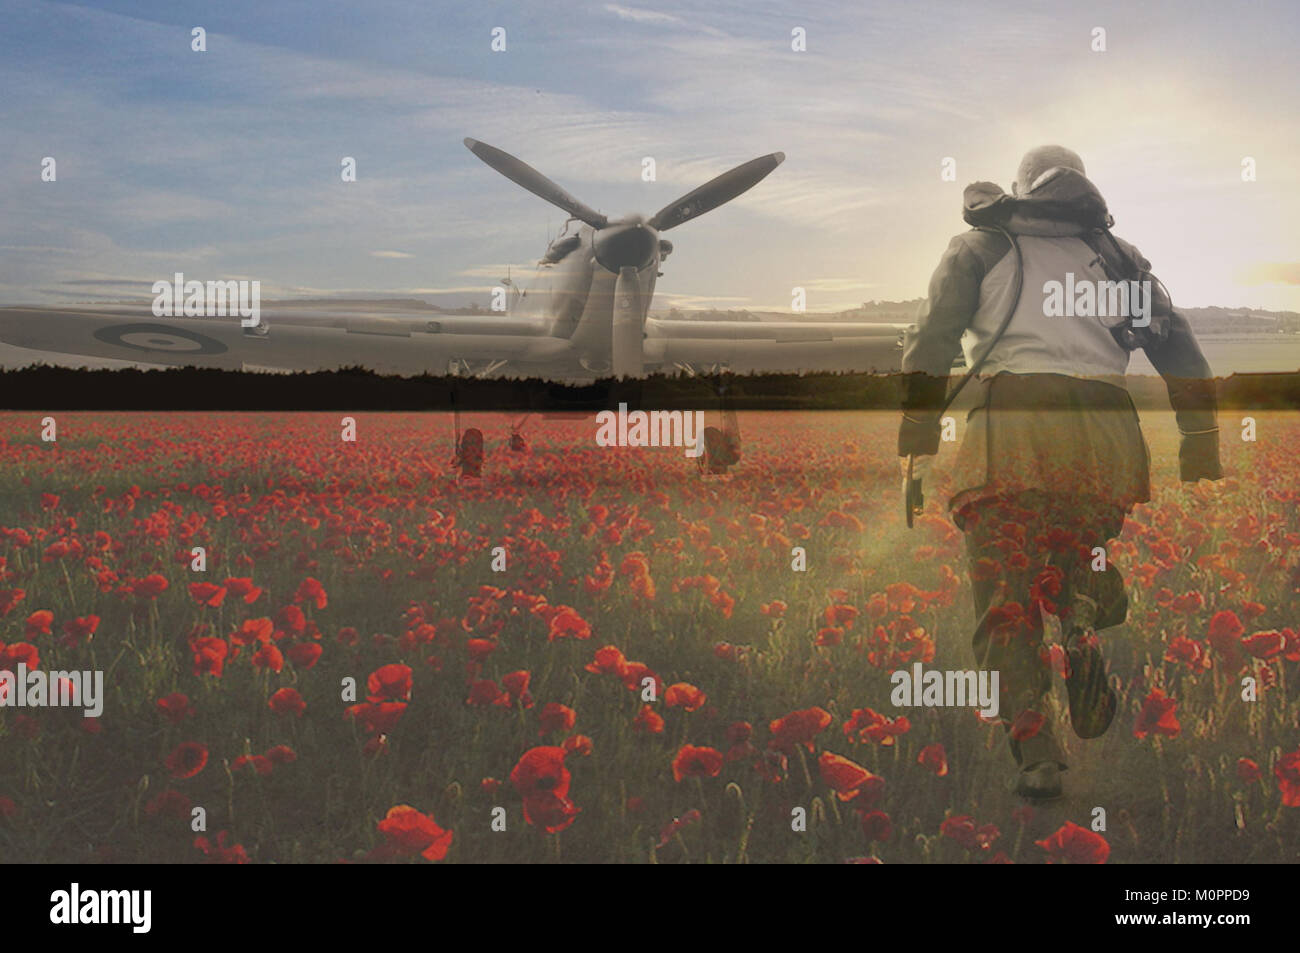 Remembrance Poppy Field Stock Photos & Remembrance Poppy ...